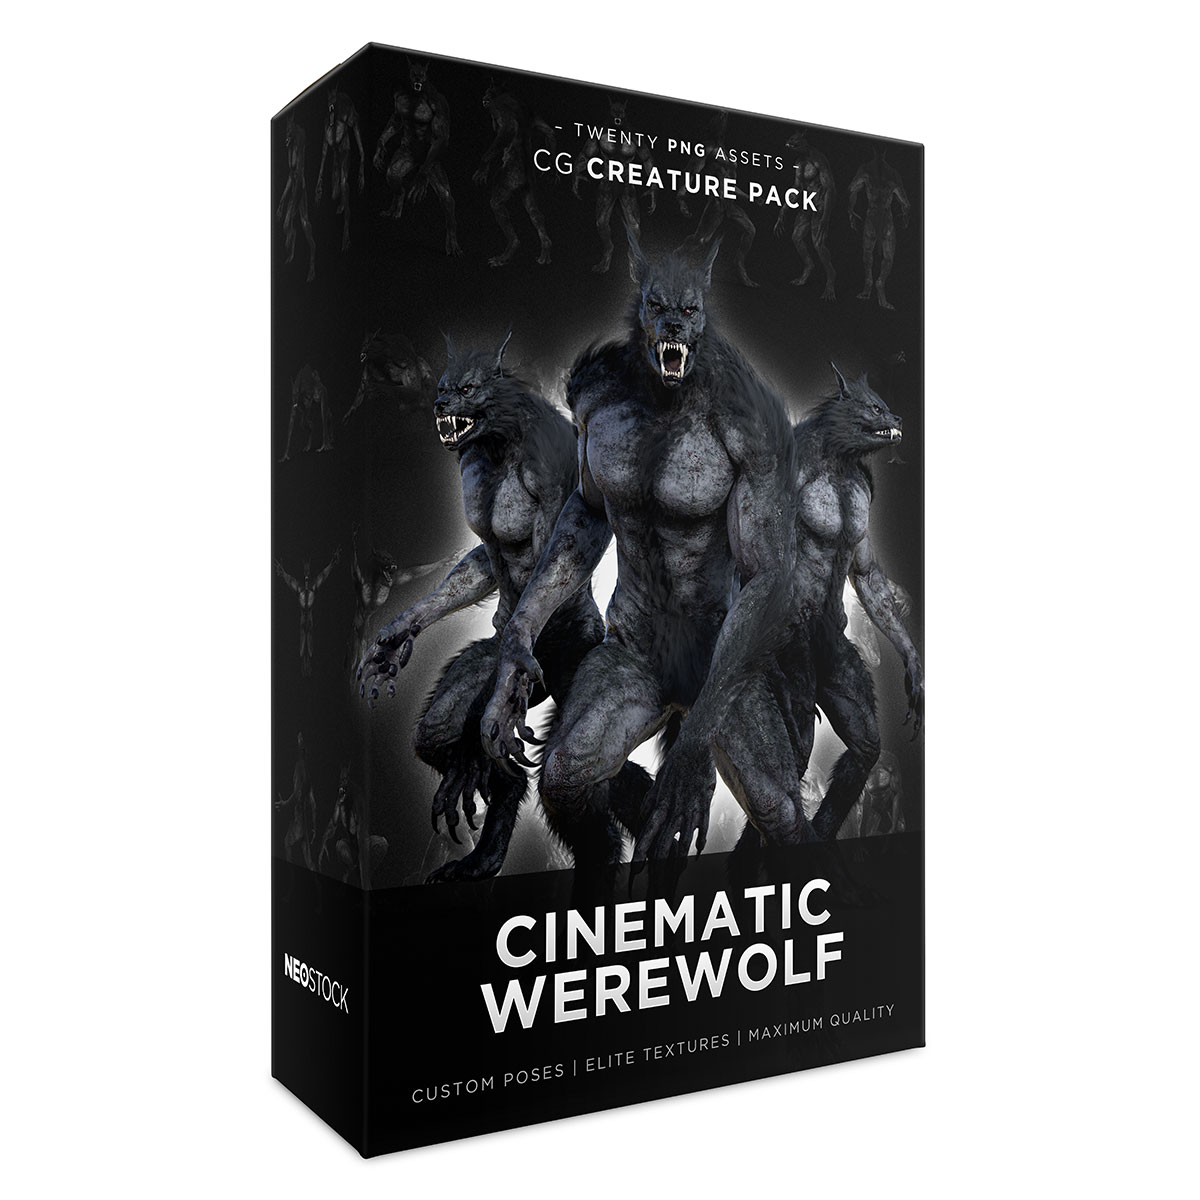 cinematic werewolf product box